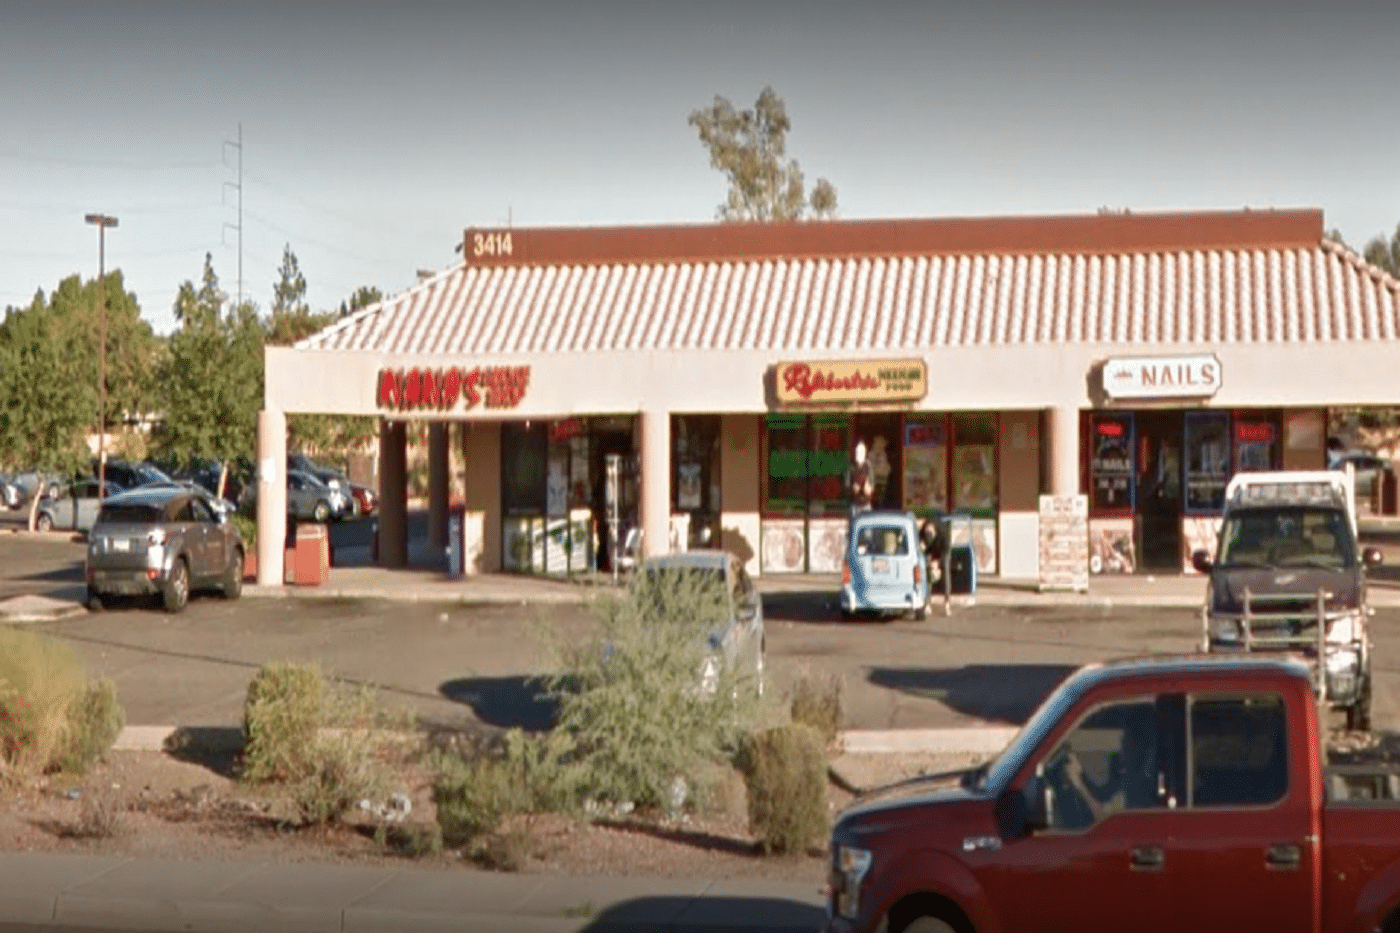 Ray's Pizza 3414 W Union Hills Dr #5, Phoenix, AZ 85027 Fined by Arizona Department of Liquor